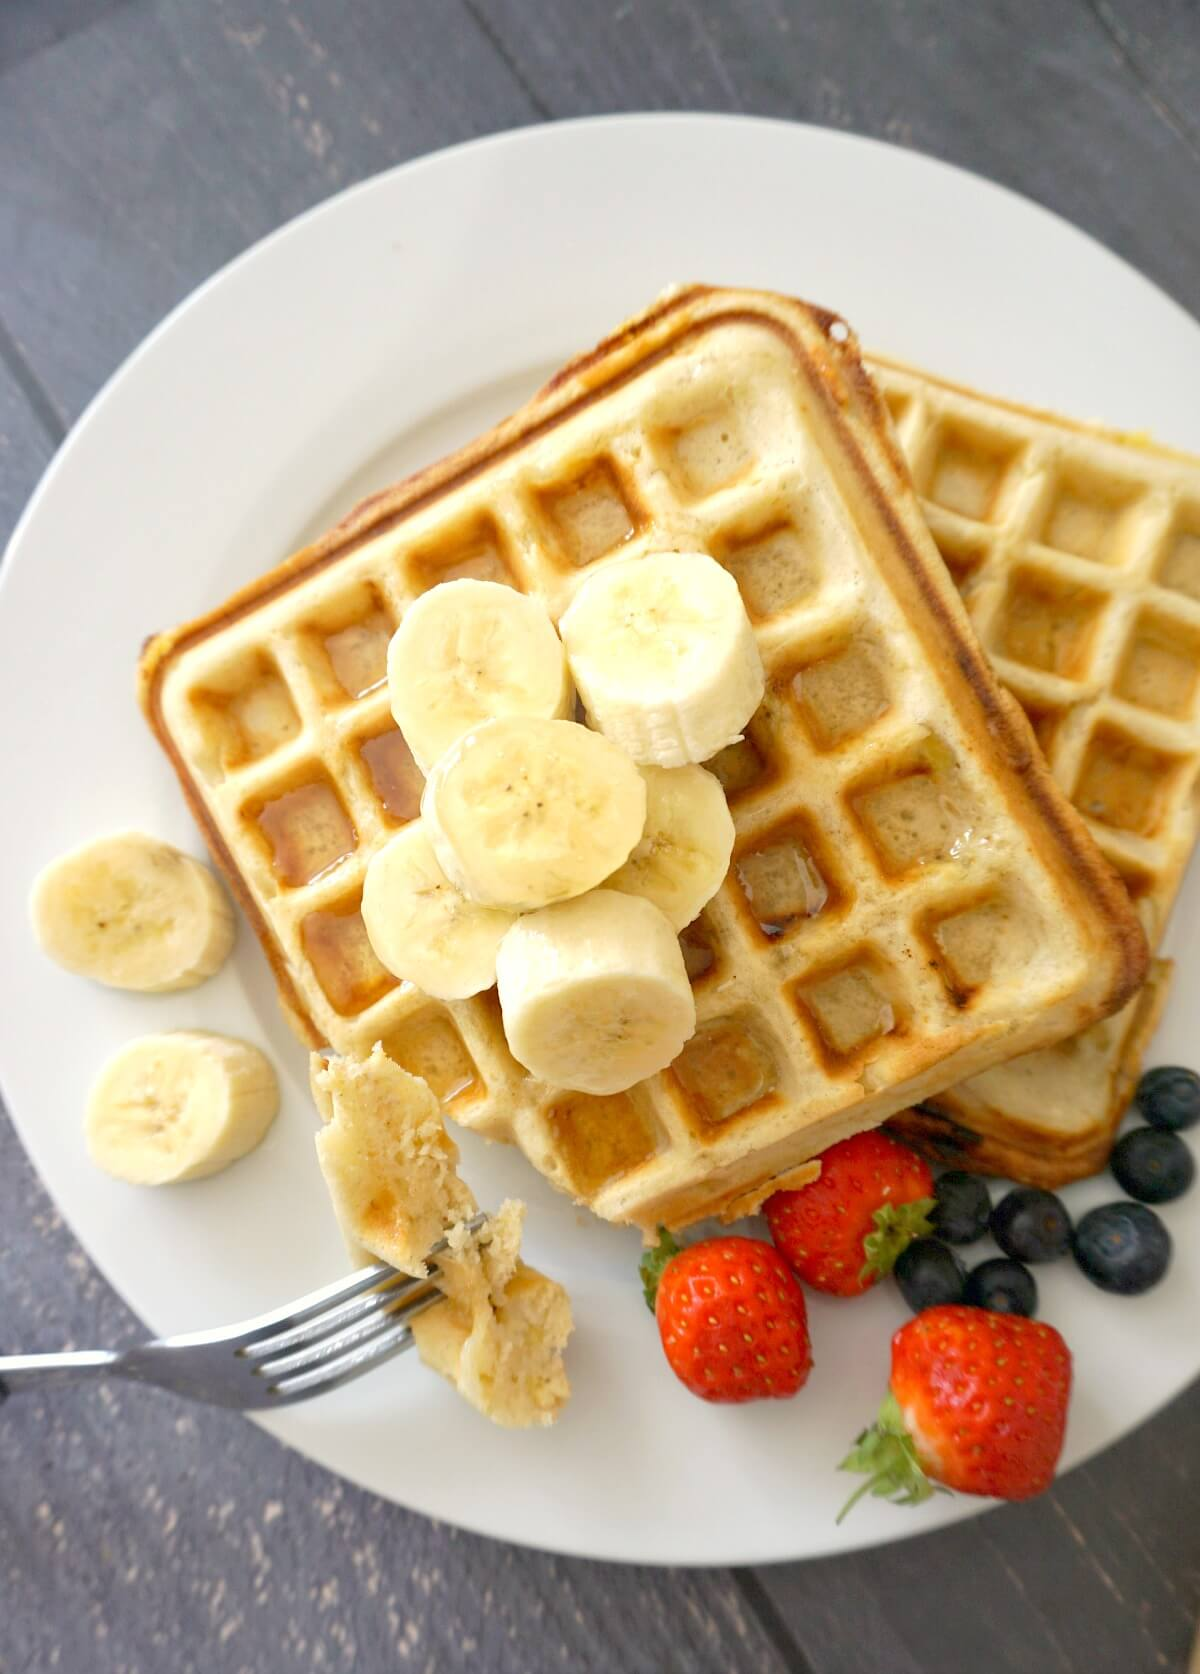 2 waffles on a white plate topped with slices of bananas and berries on the side